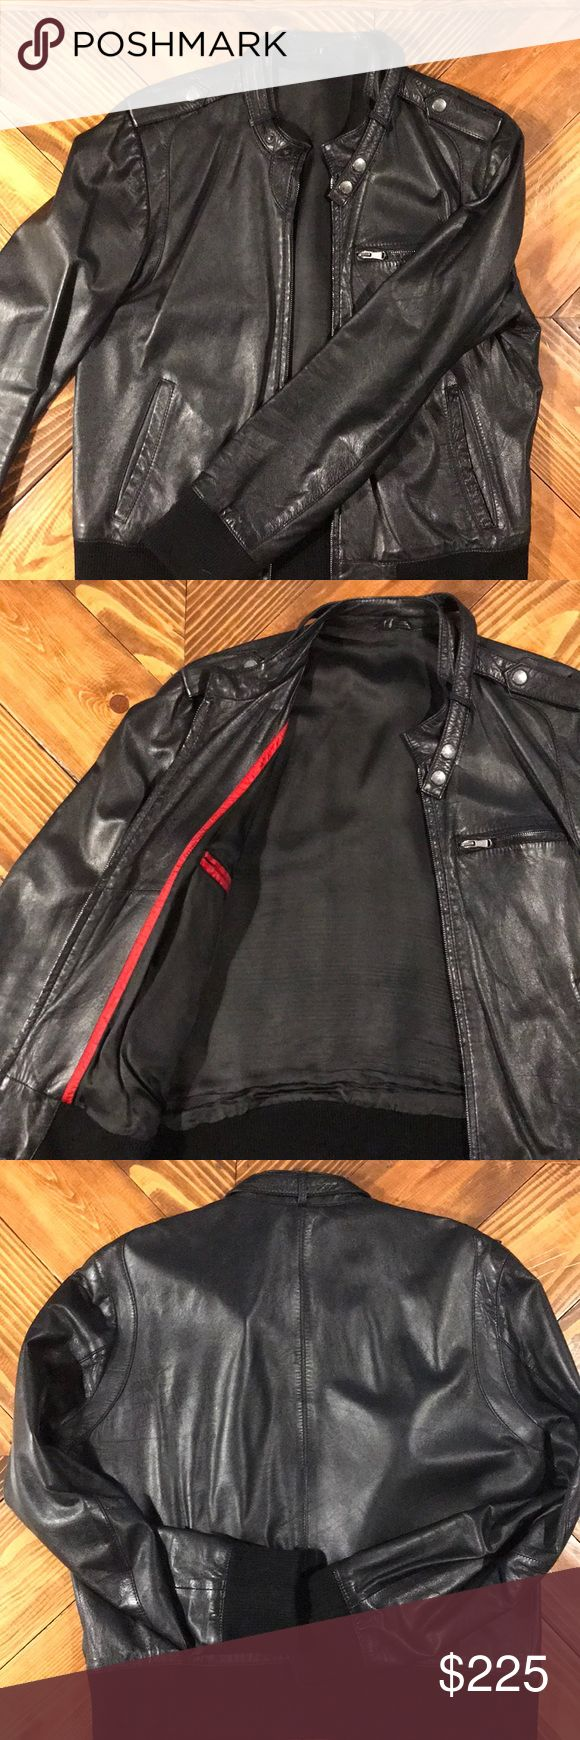 Hugo Boss leather jacket Boss leather jacket, Leather